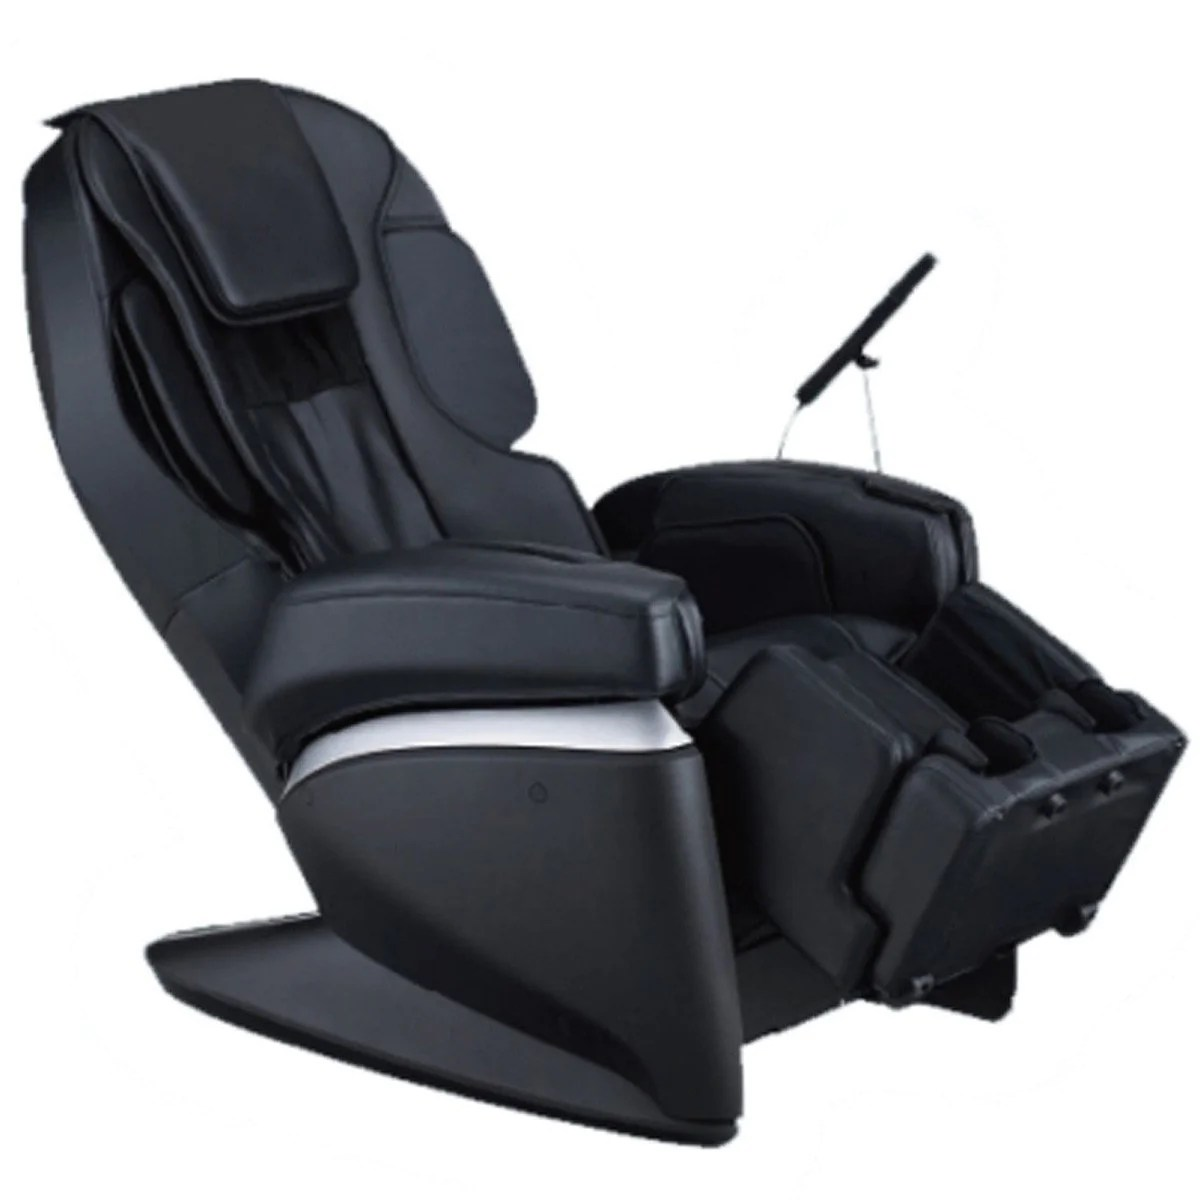 osaki massage chair dealers stool in malay japan made furniture gumtree